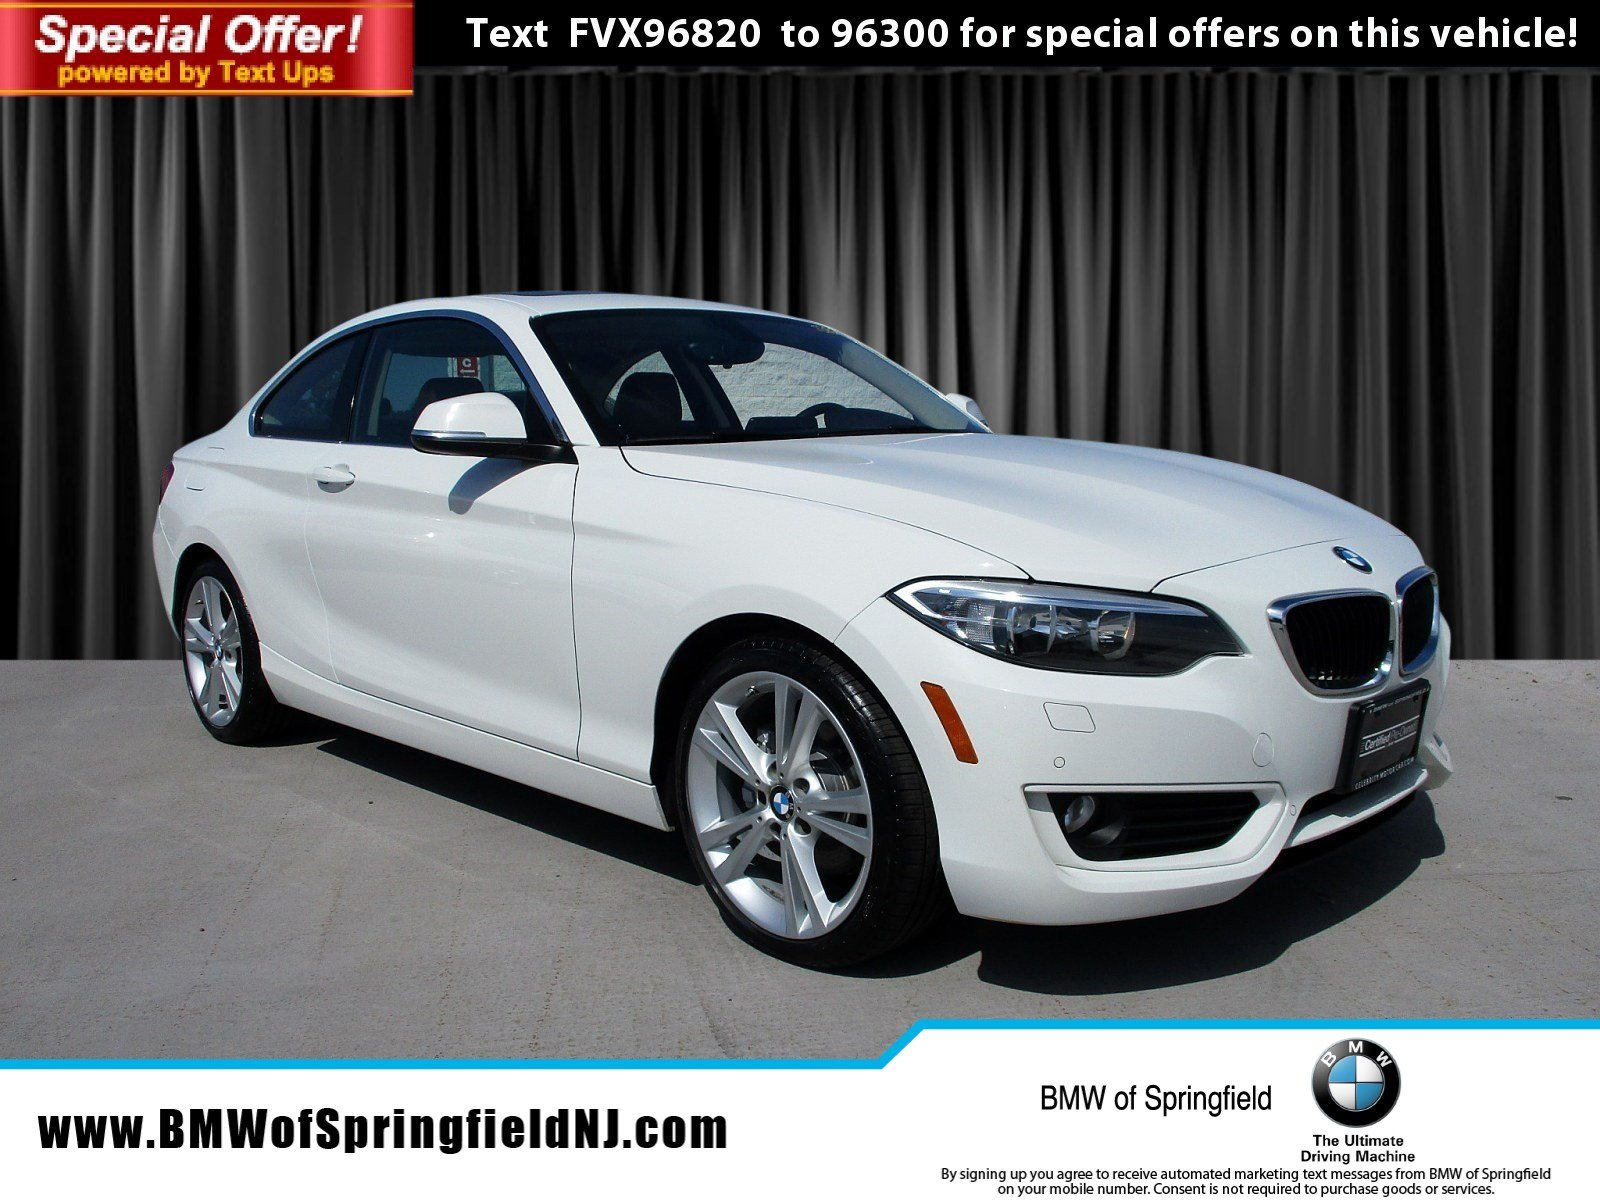 Pre Owned BMW Cars & SUVs For Sale